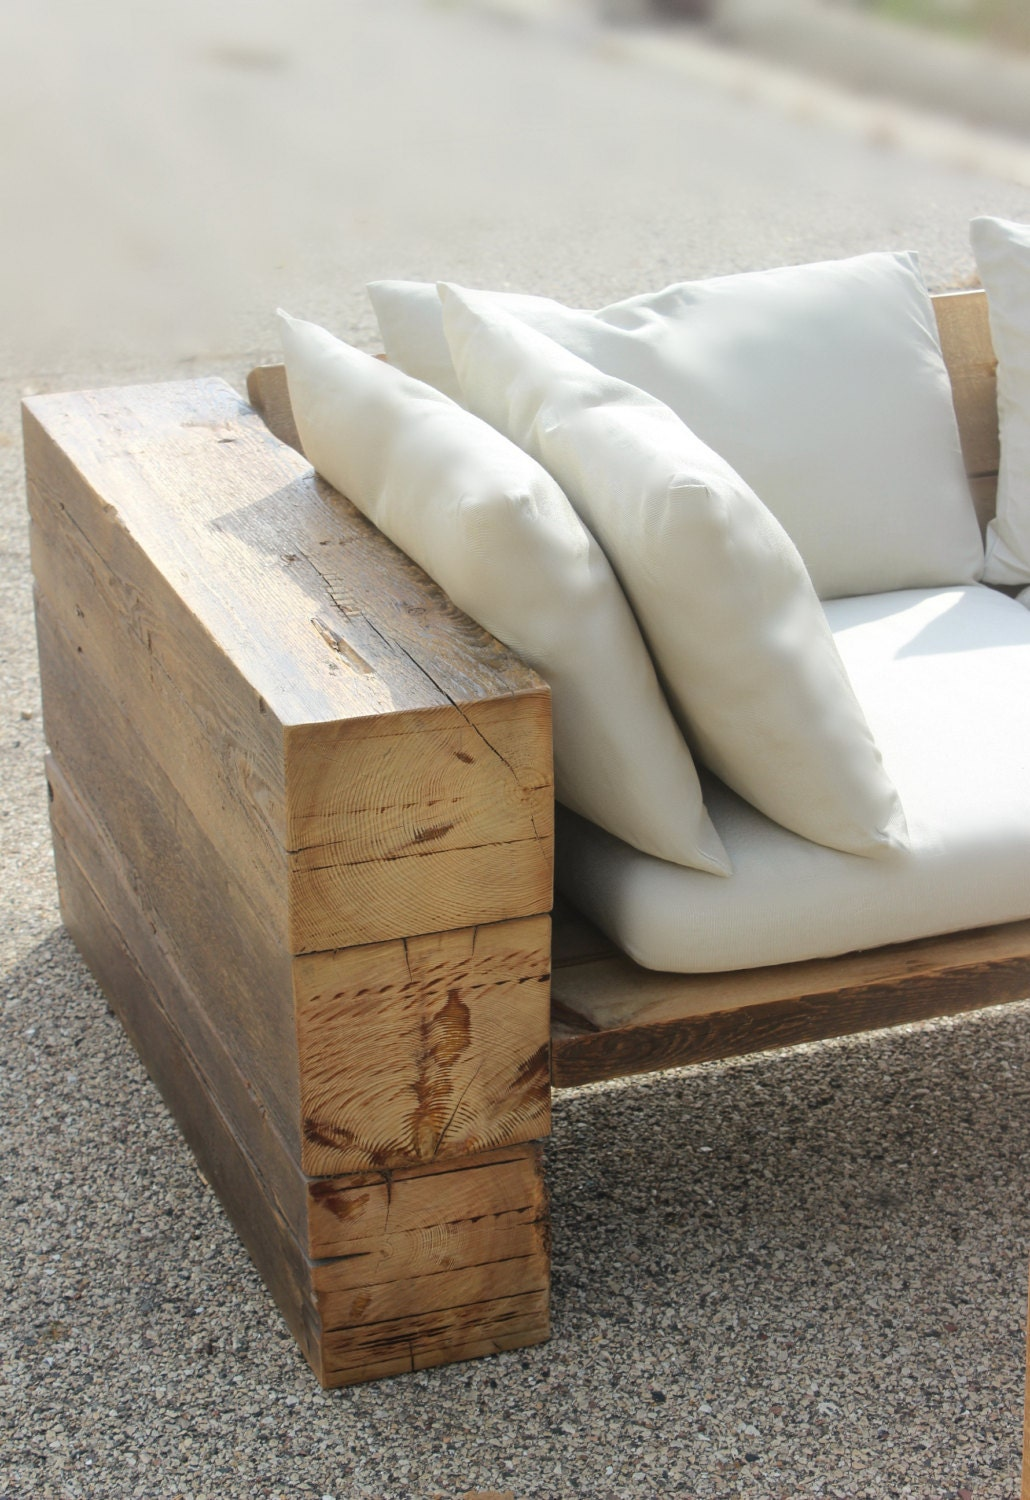 rustic sofa couch sectional reclaimed wood by dendroco on etsy. Black Bedroom Furniture Sets. Home Design Ideas